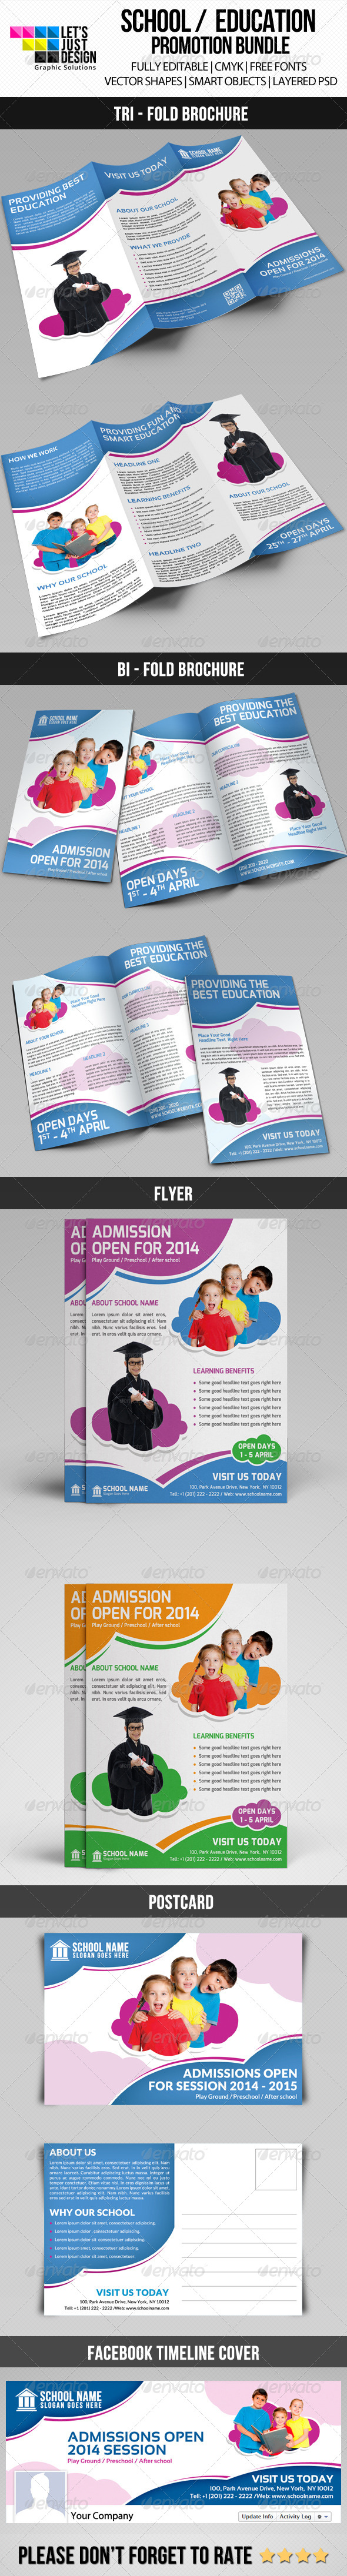 School Promotion Material Bundle